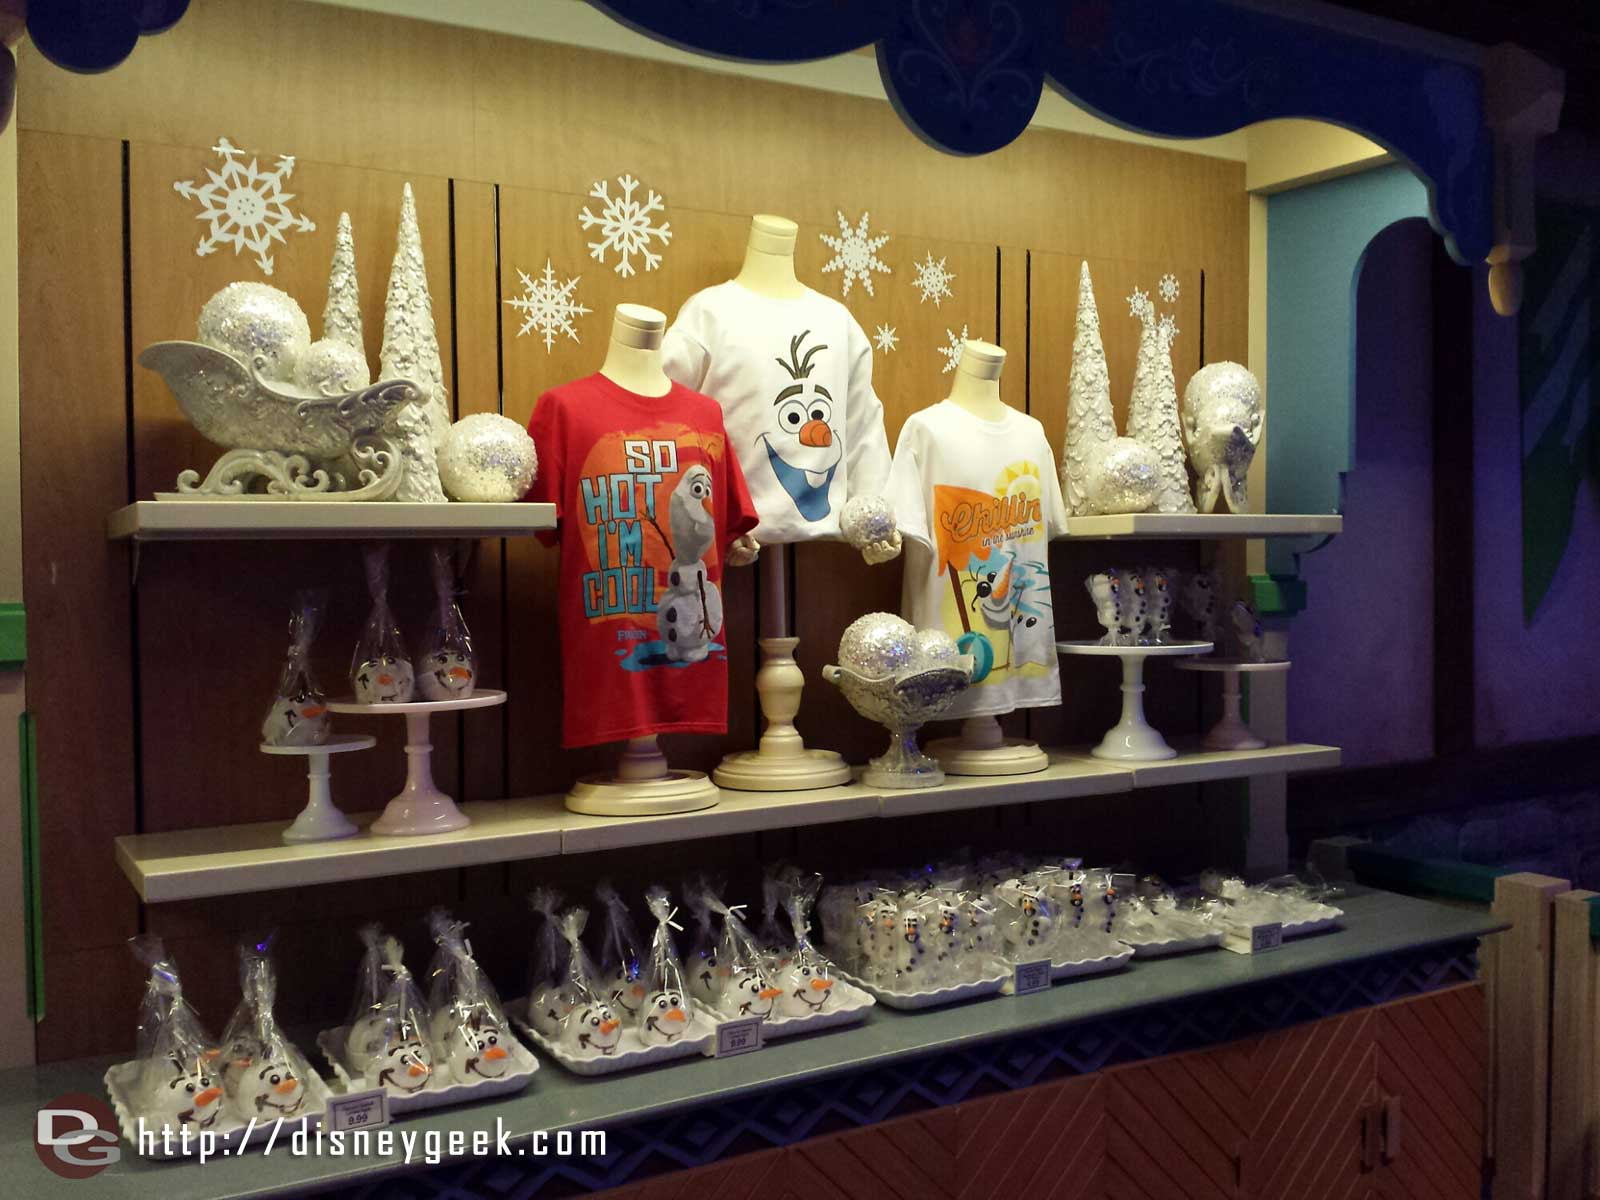 Some of the Olaf merchandise in the snow fest #FrozenFun